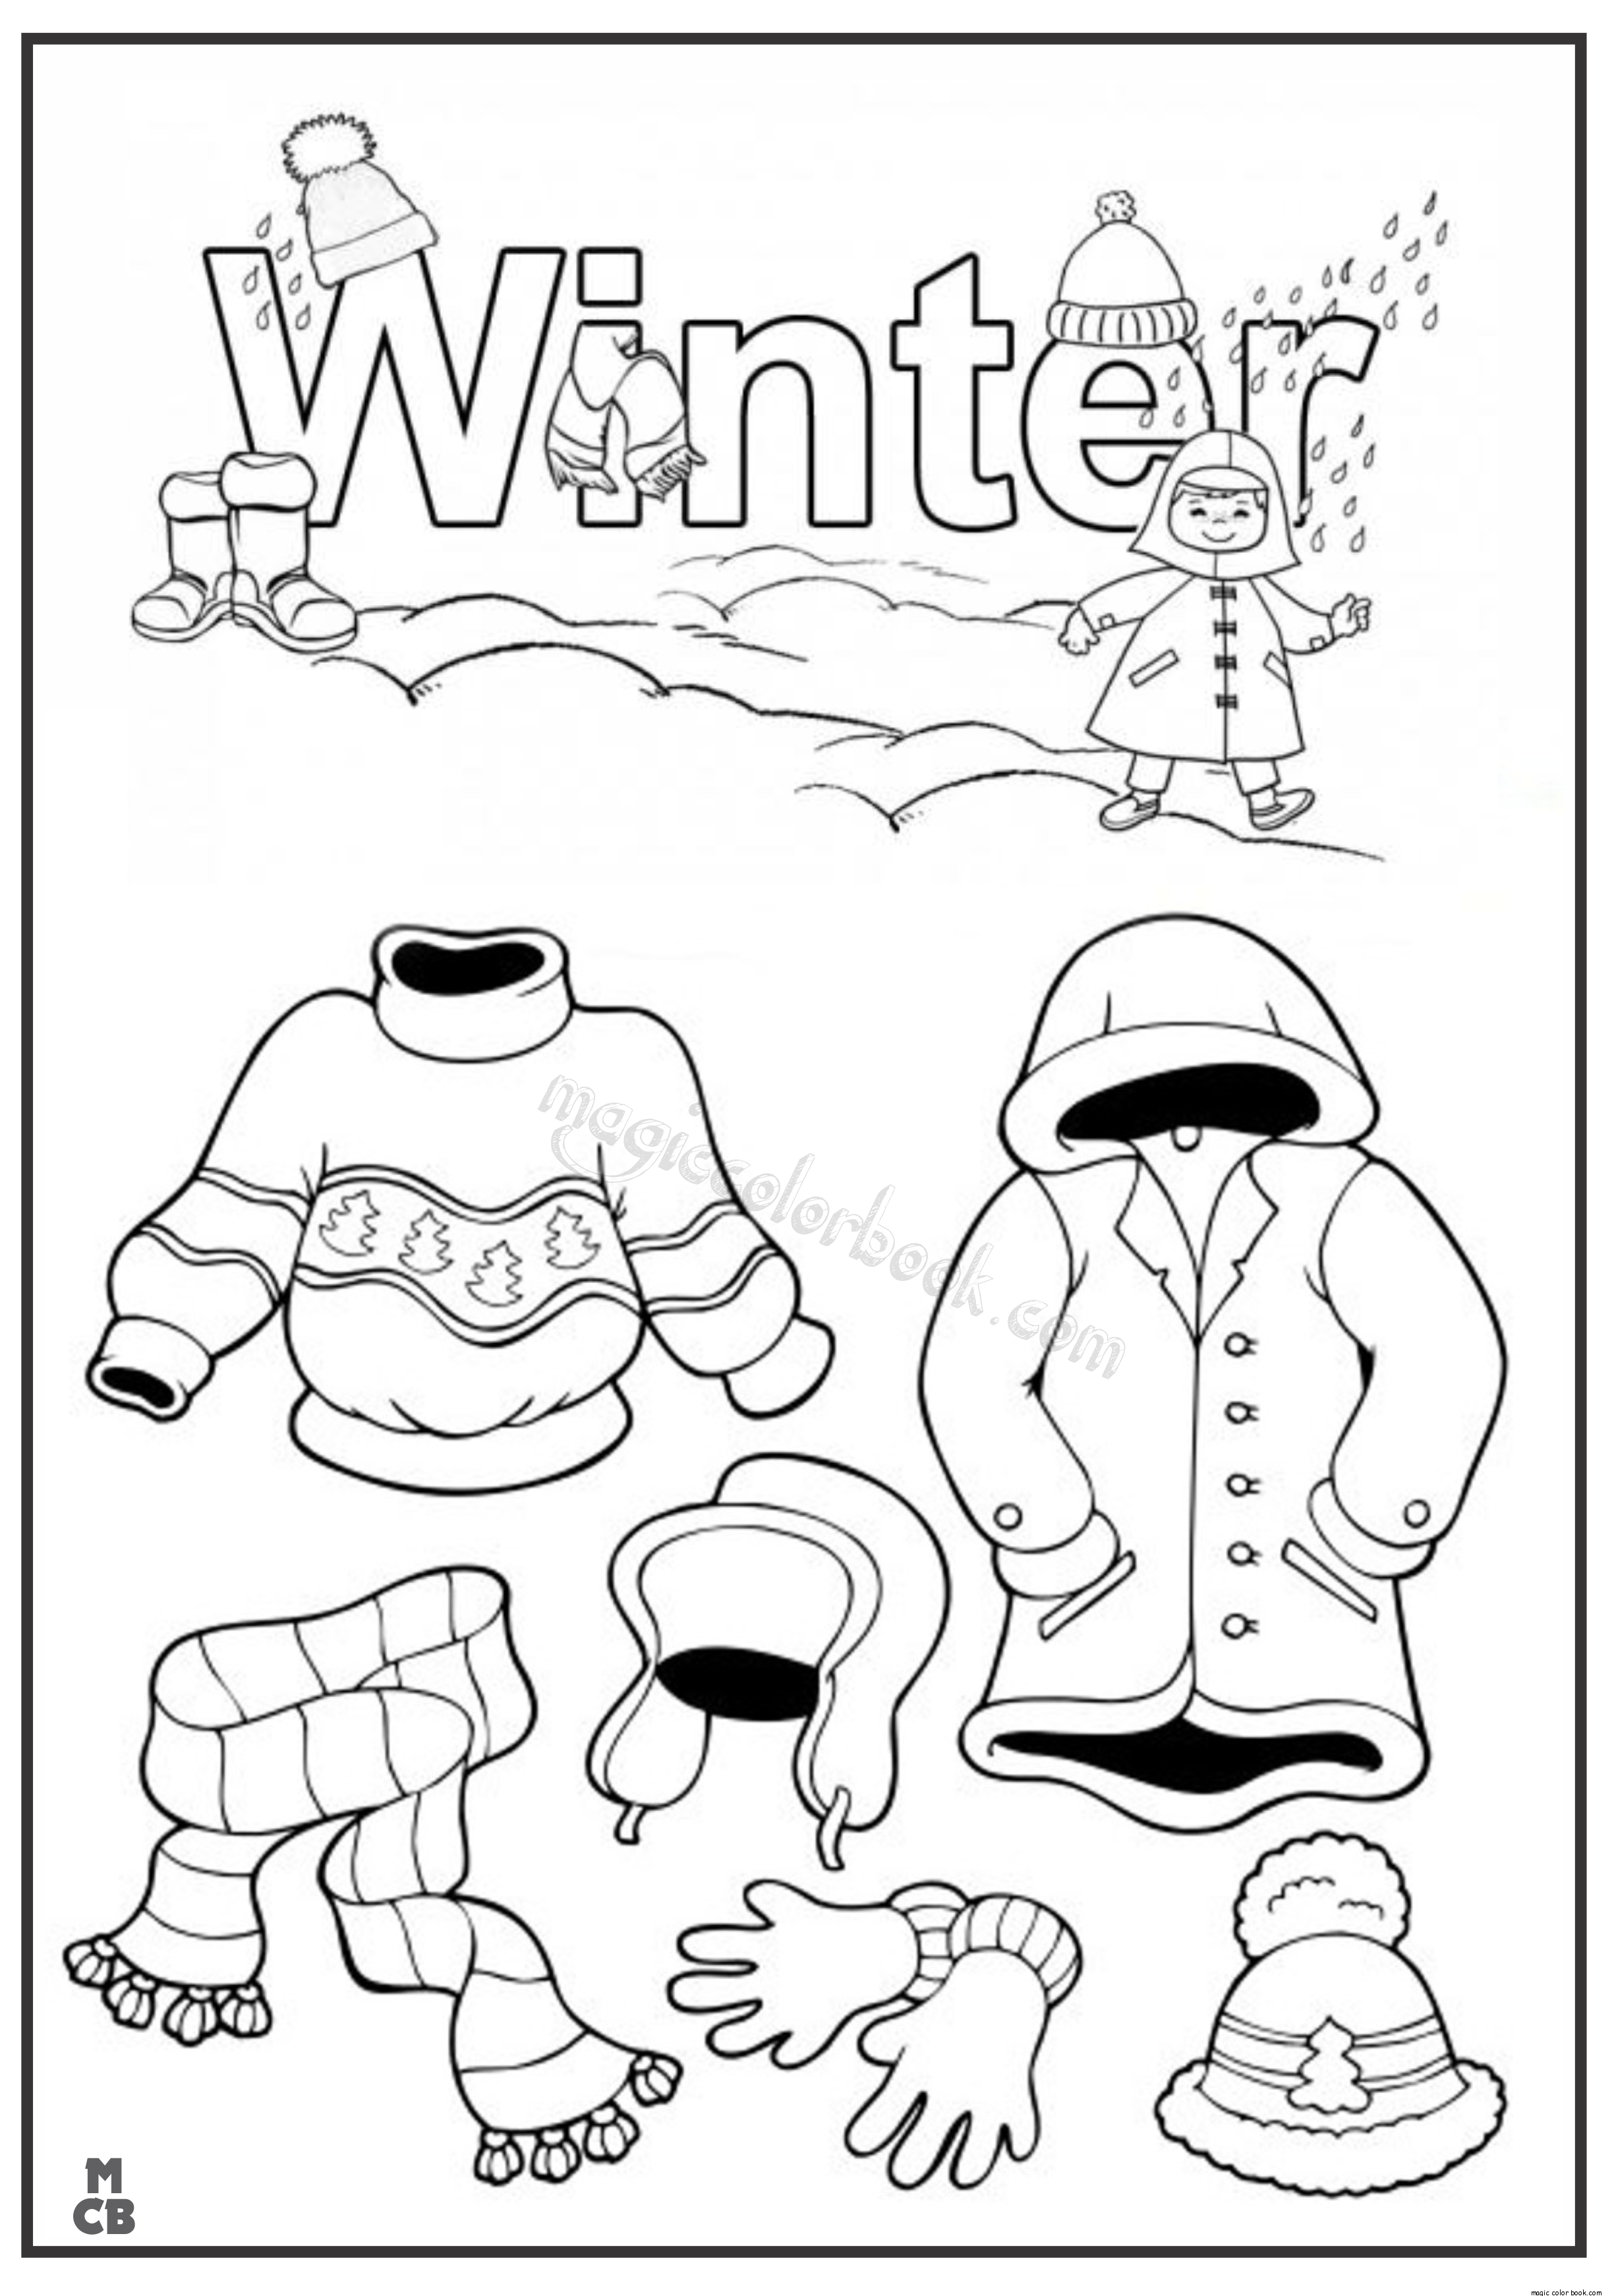 Clothes Coloring Pages At Getdrawings